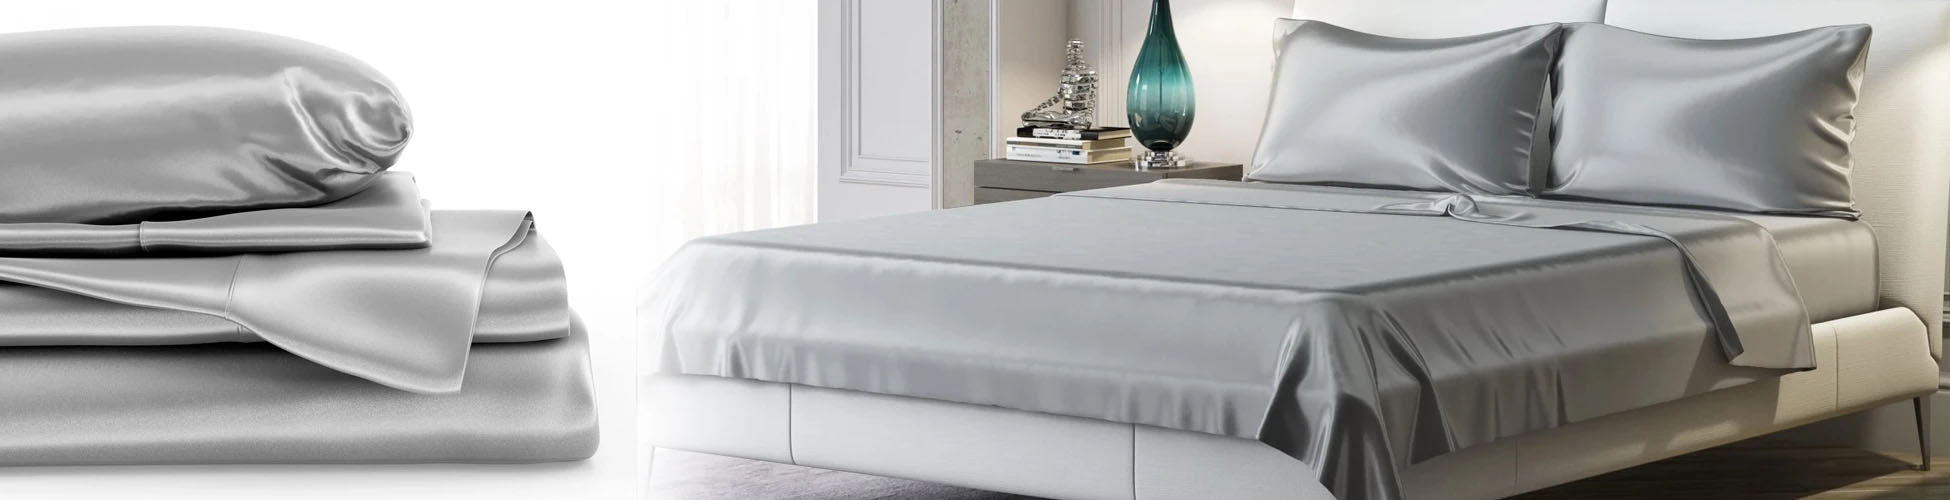 A stack of silk sheets and bed made with silver silver sheets